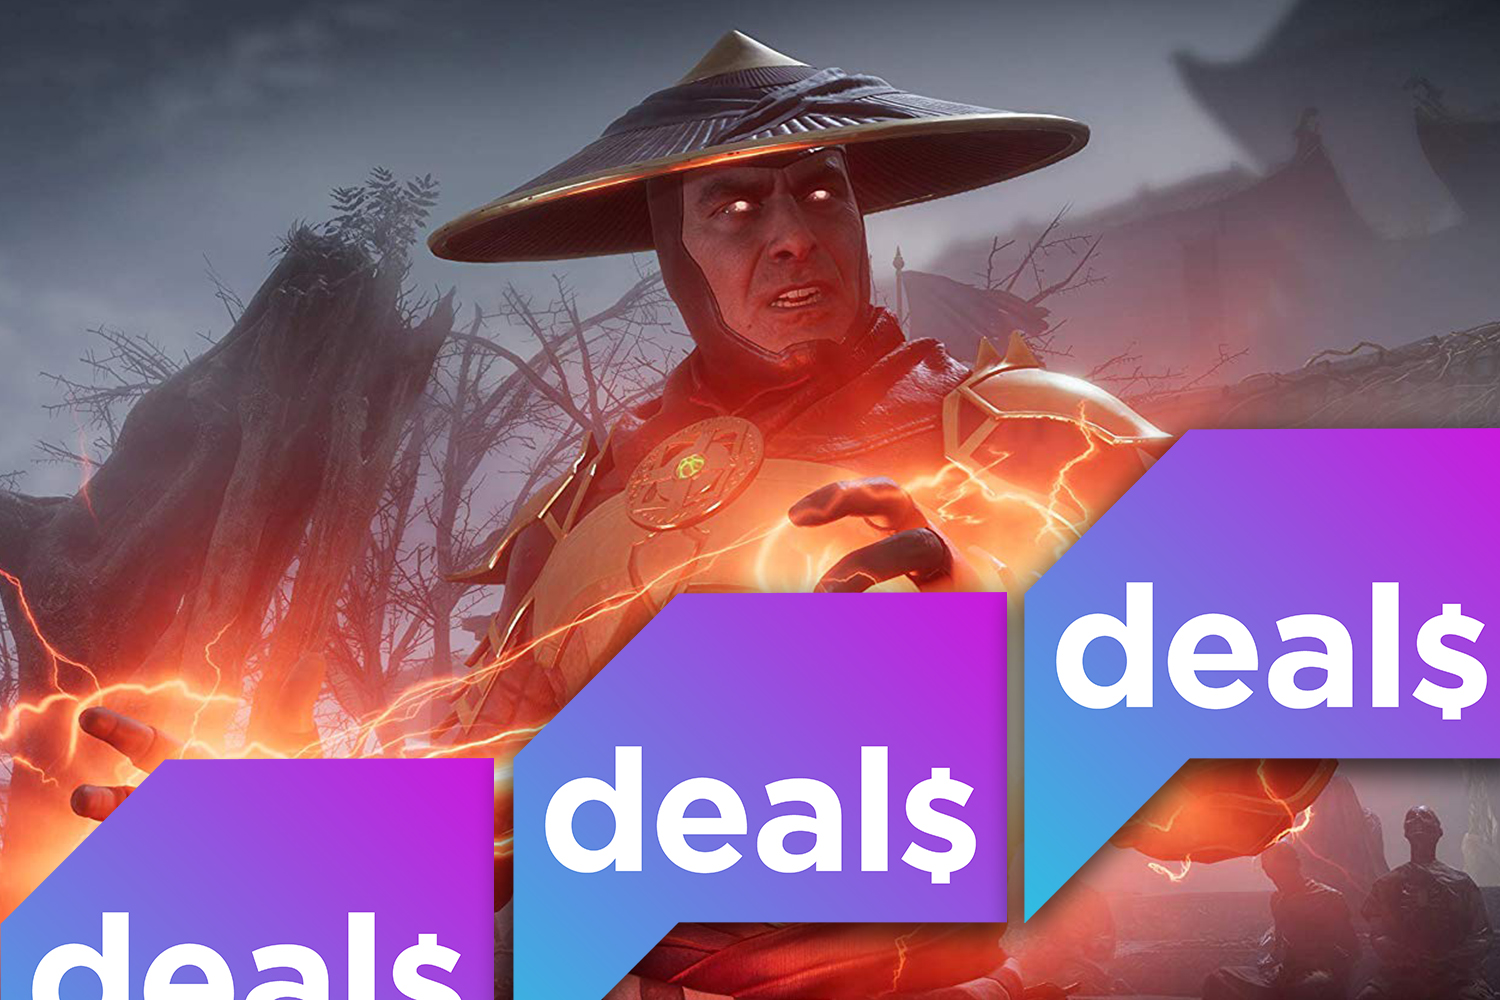 A TCL 6-series 4K TV, Mortal Kombat 11, and more of the week's very best deals